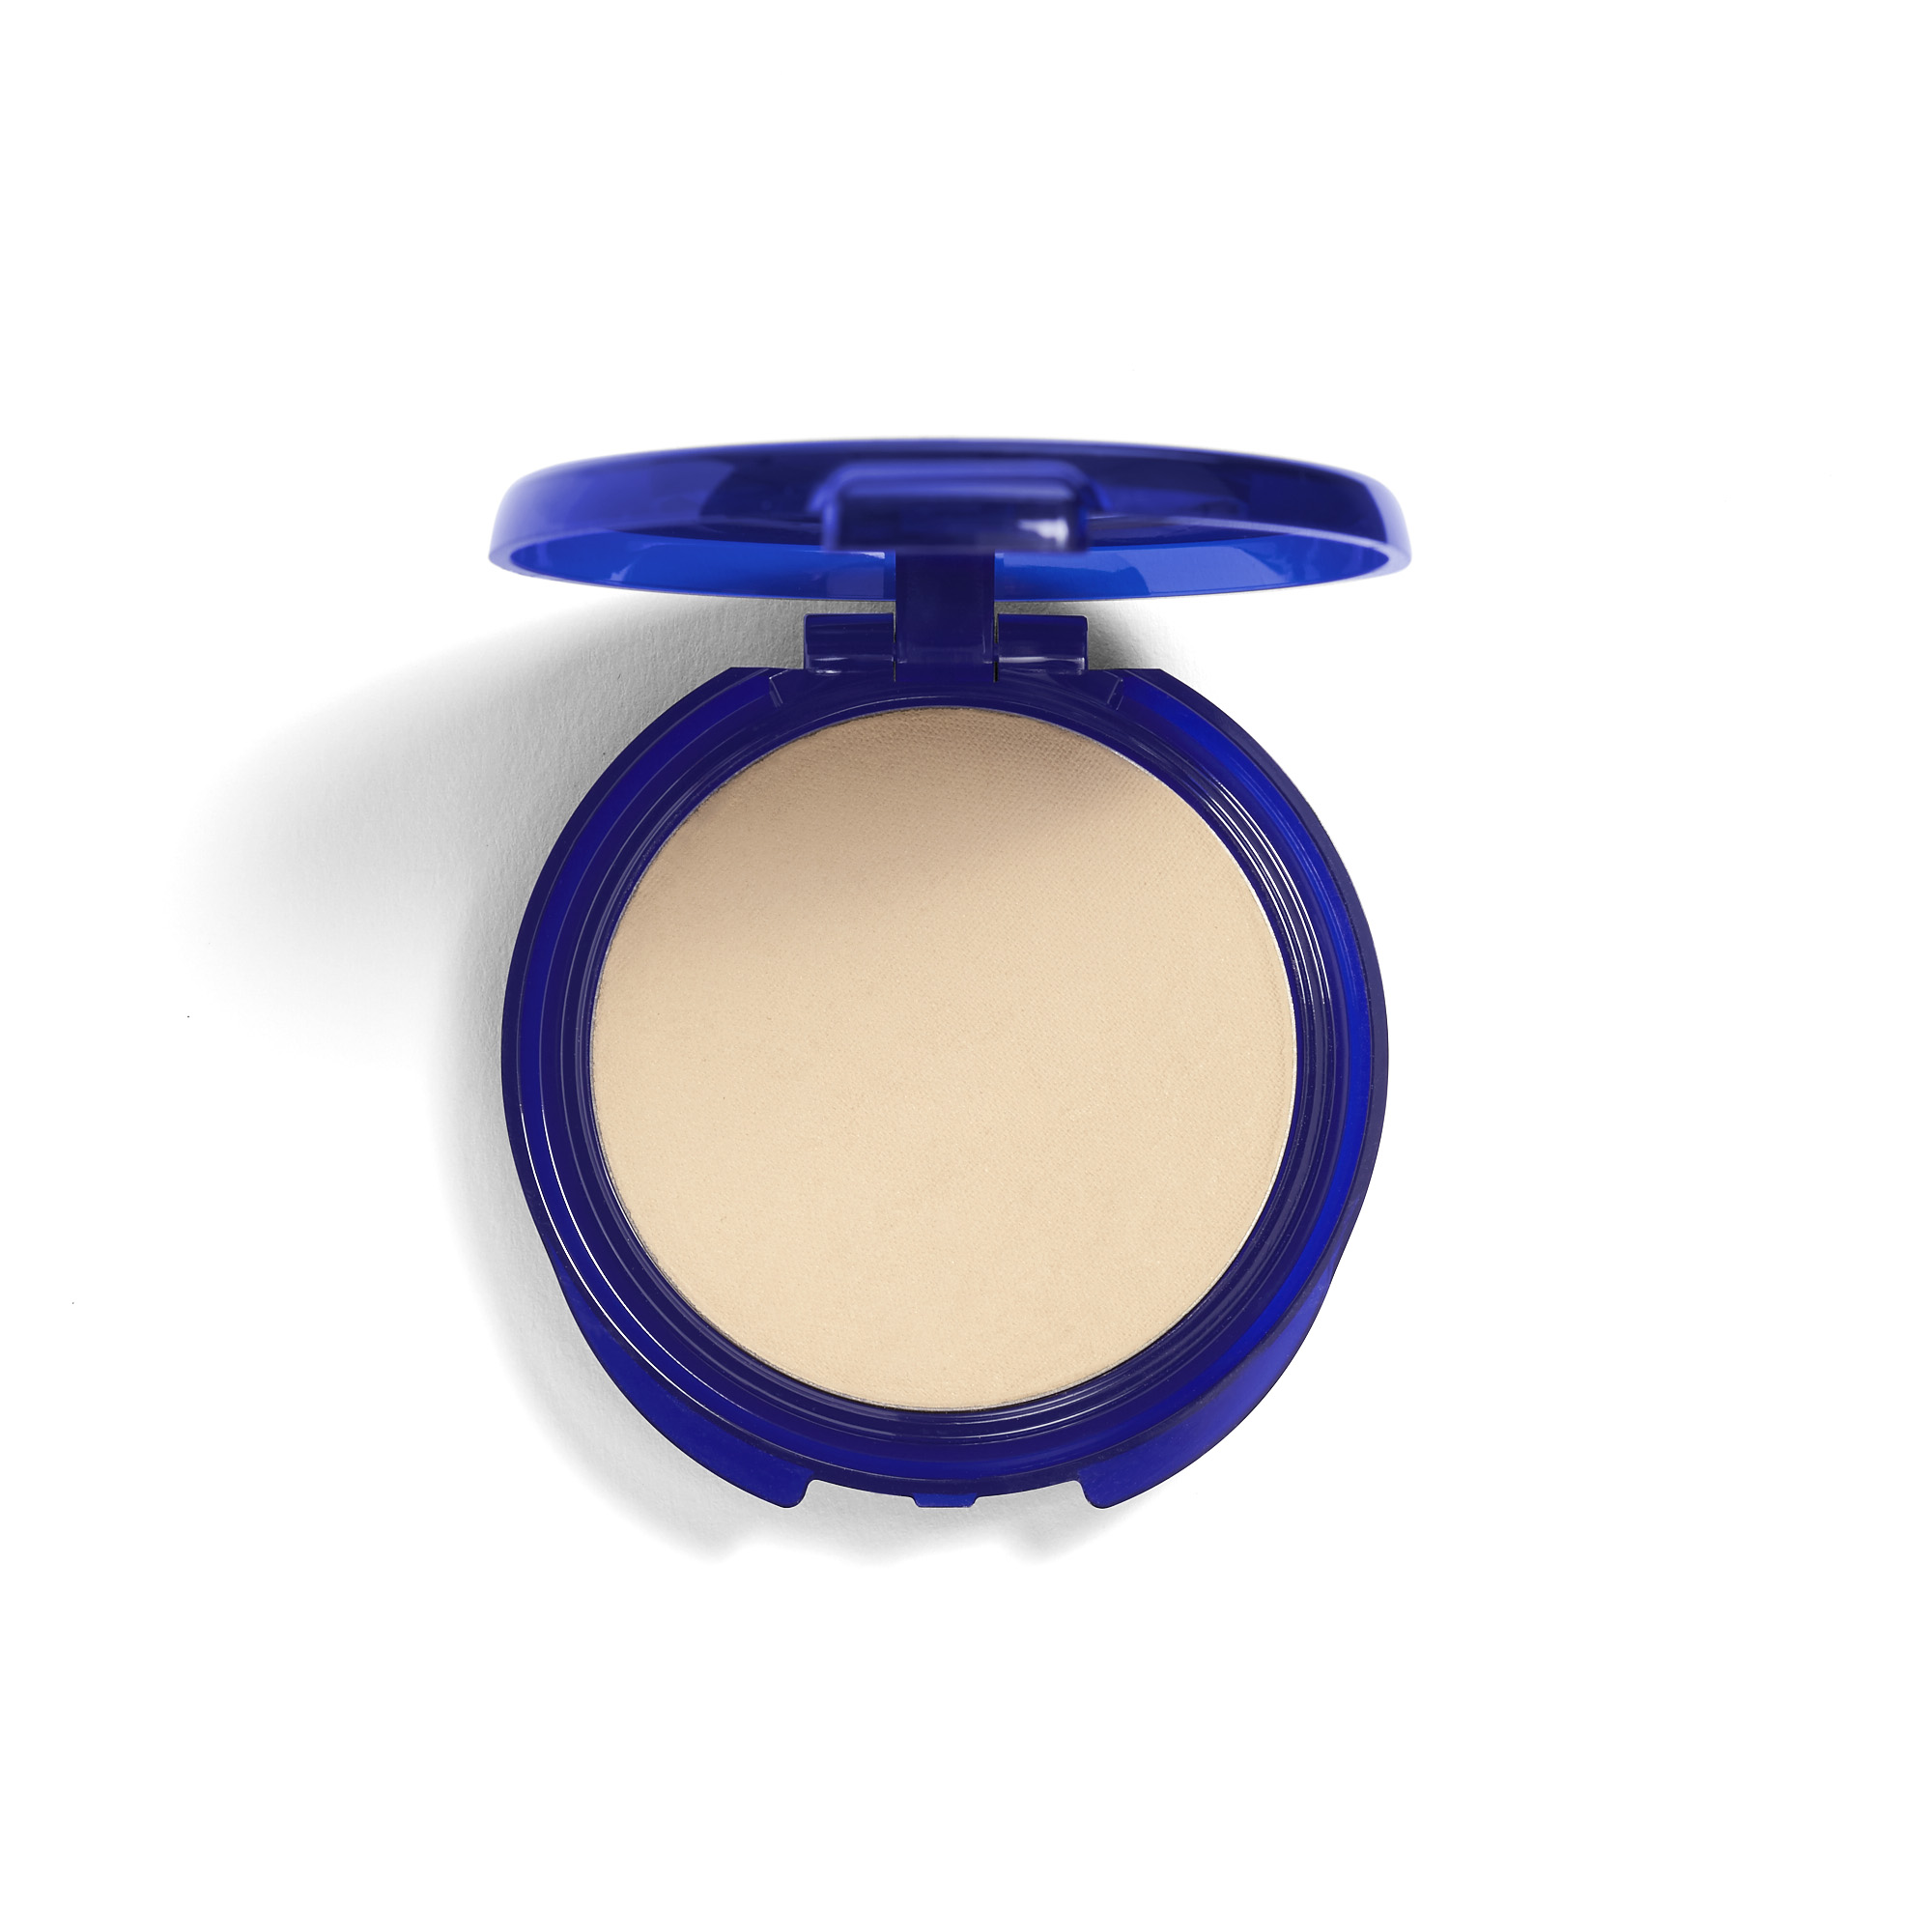 COVERGIRL Smoothers Pressed Powder, Translucent Fair, .32 oz